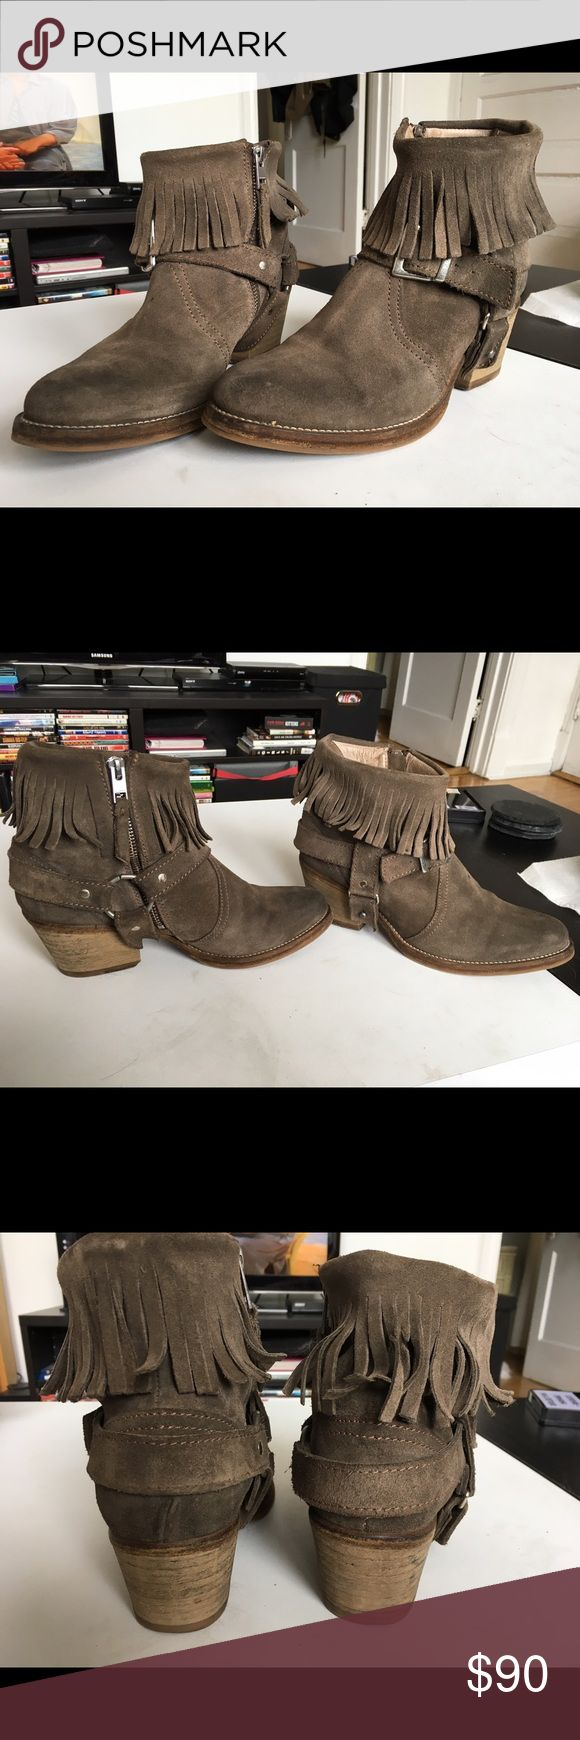 "Allsaints Suede fringe booties taupe sz 40. Allsaints buckle and fringe booties. Used but good condition. Size 40. Measuring the heel from the back of the shoe - 2"". Any questions, just ask! All Saints Shoes Ankle Boots & Booties"